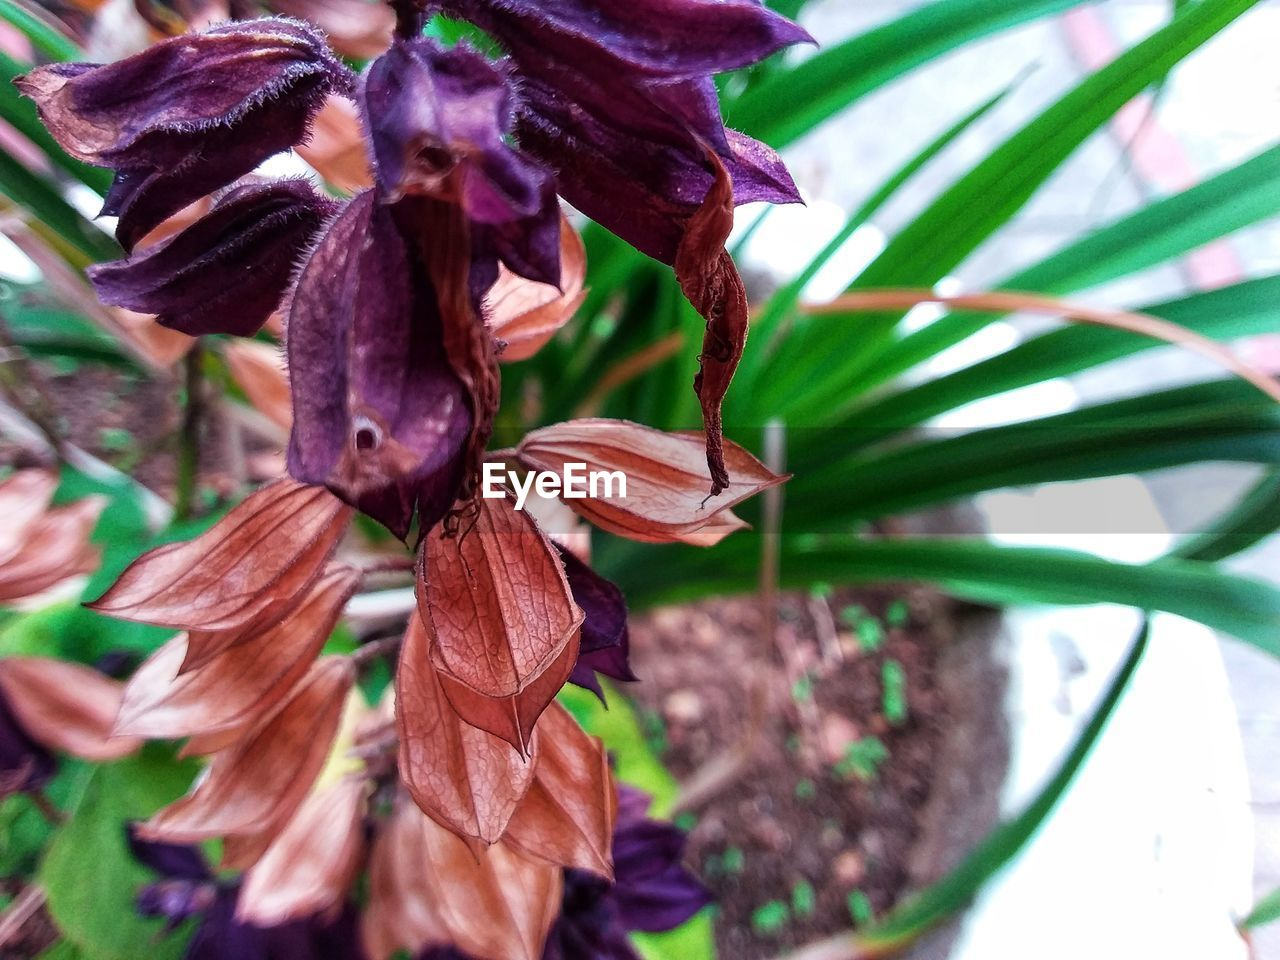 plant, growth, beauty in nature, close-up, flowering plant, plant part, flower, fragility, vulnerability, leaf, nature, no people, freshness, petal, day, focus on foreground, flower head, inflorescence, selective focus, botany, outdoors, purple, maroon, wilted plant